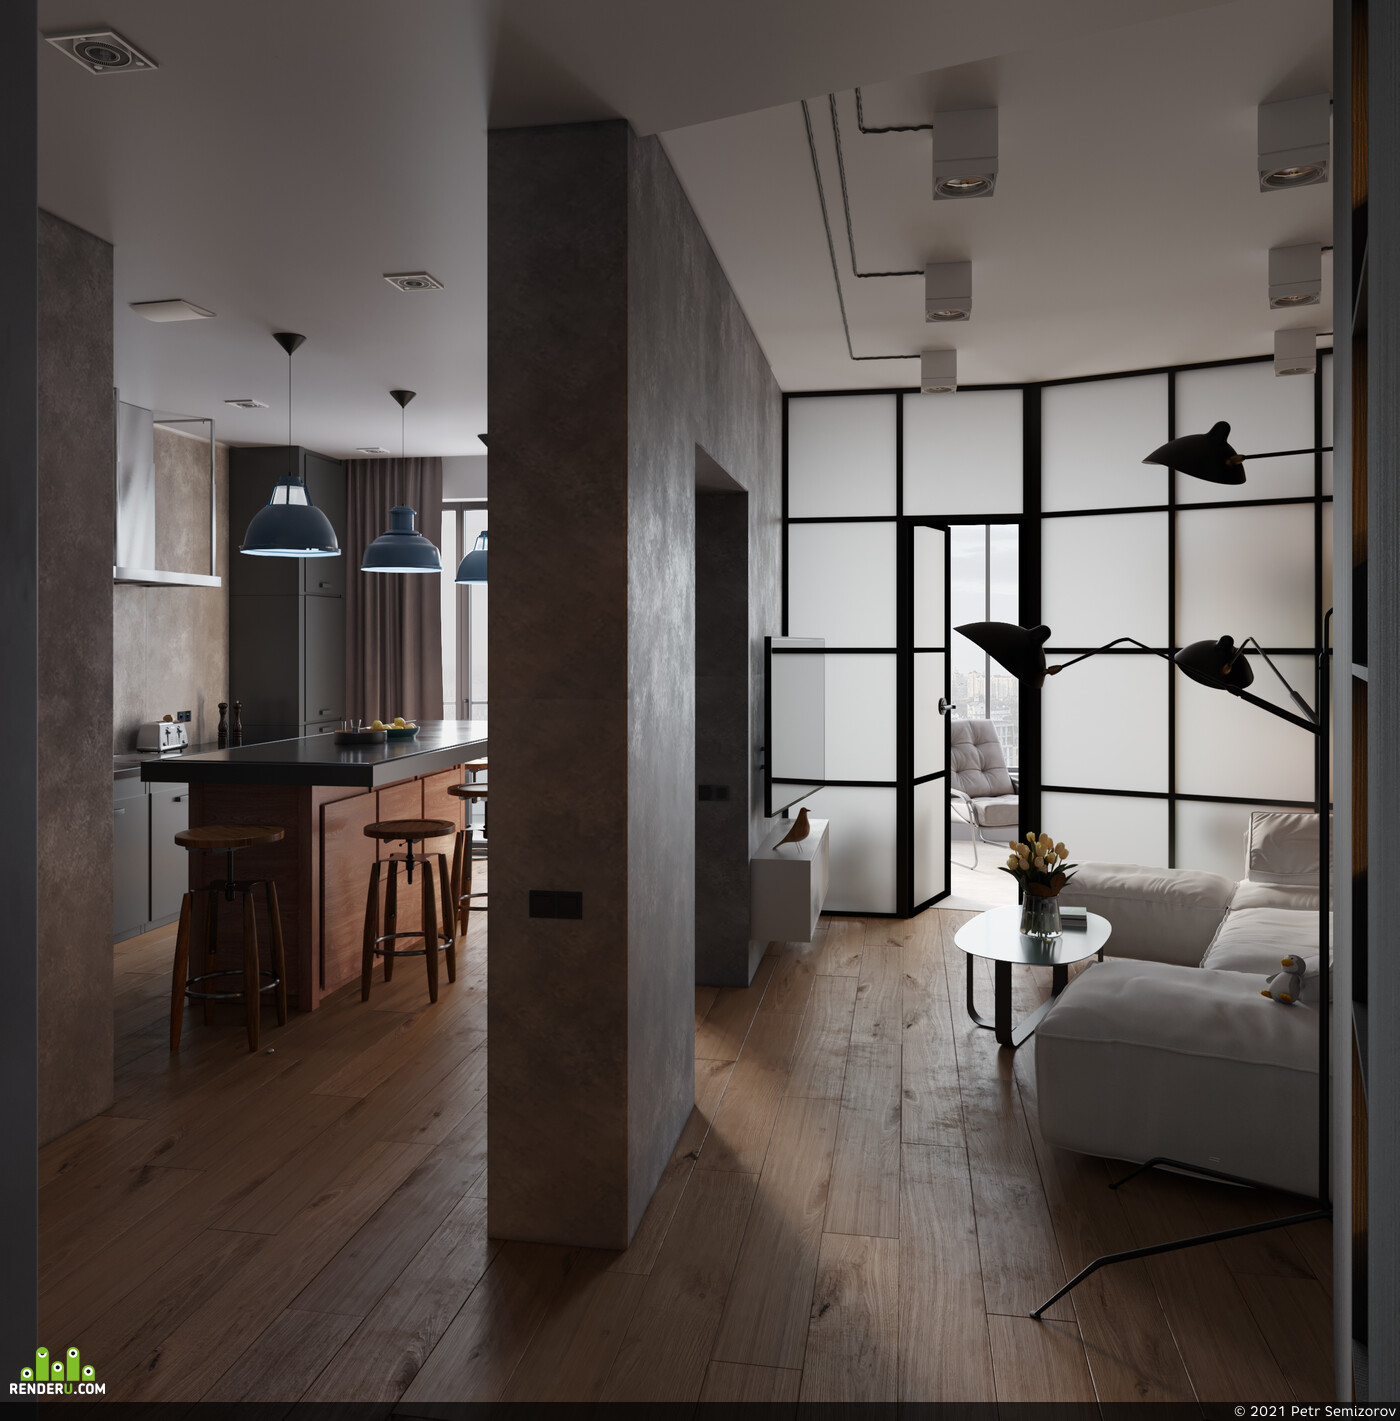 interiordesign, loft Interior, 3ds Max, 3D Architecture, Adobe Photoshop